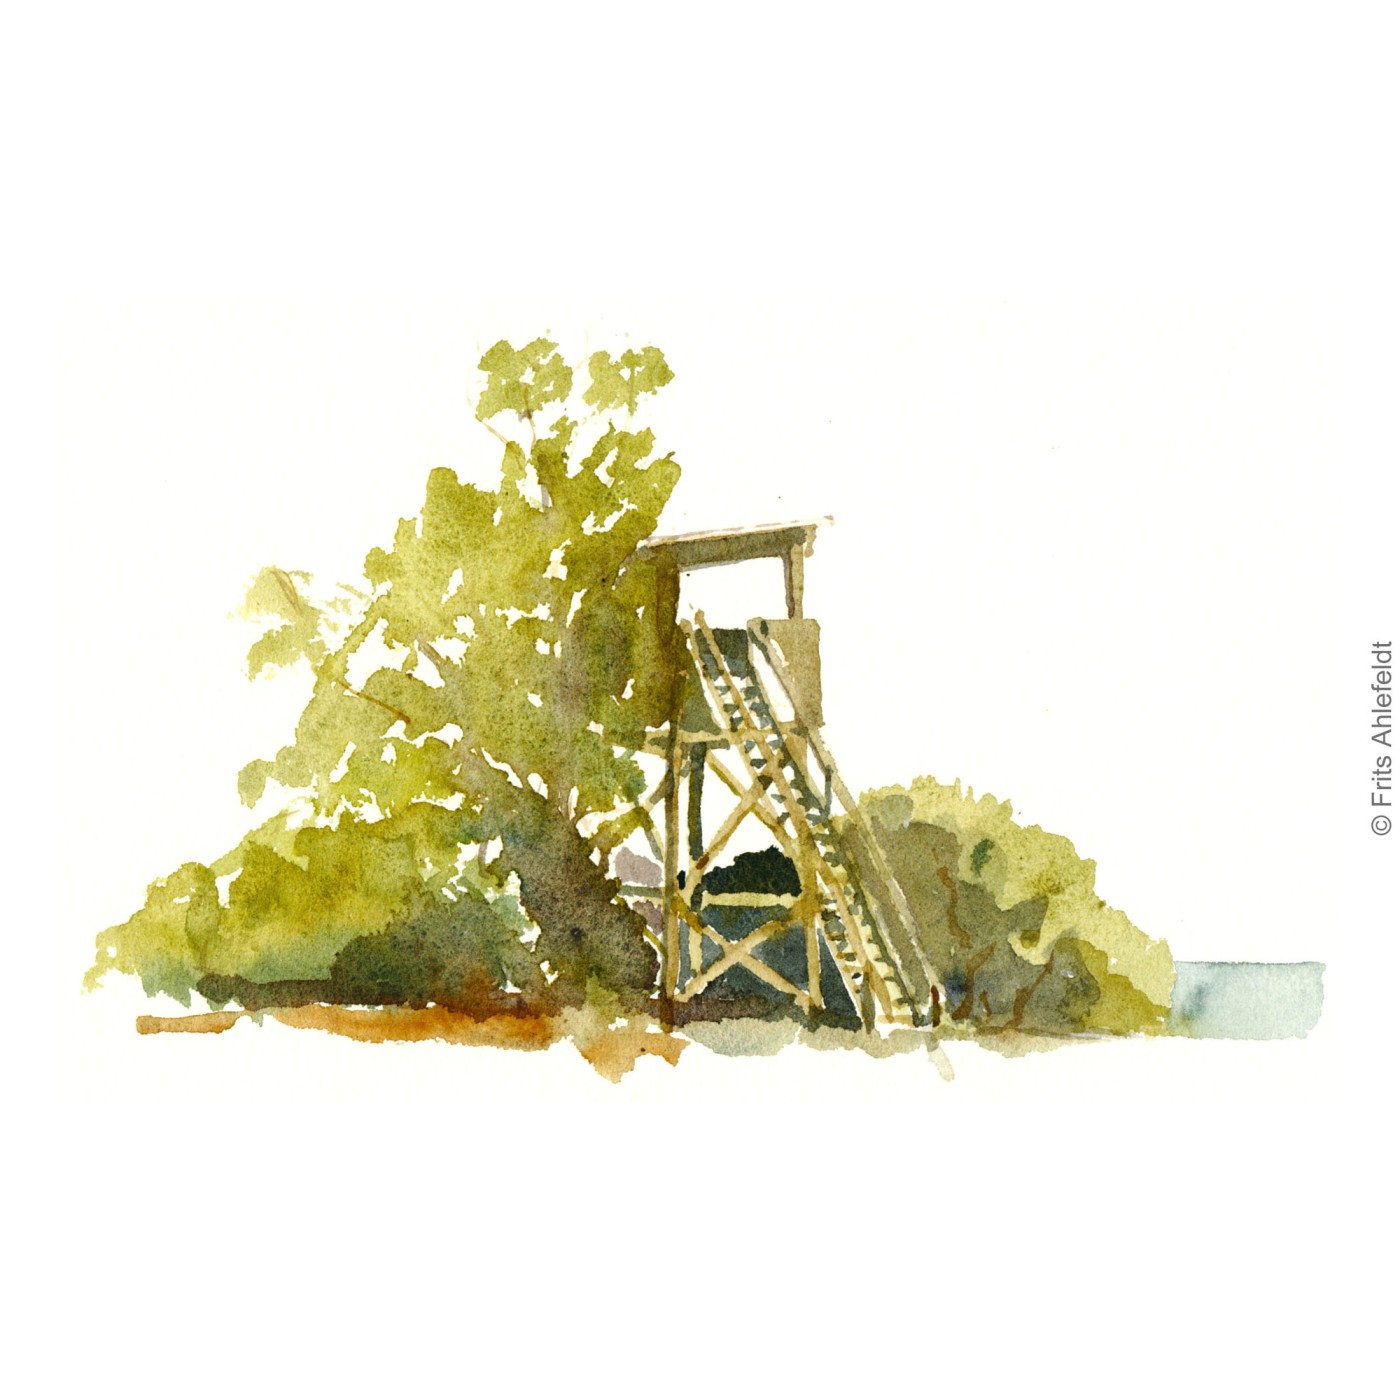 Birdwatching tower close to Nexo. Bornholm watercolor painting by Frits Ahlefeldt